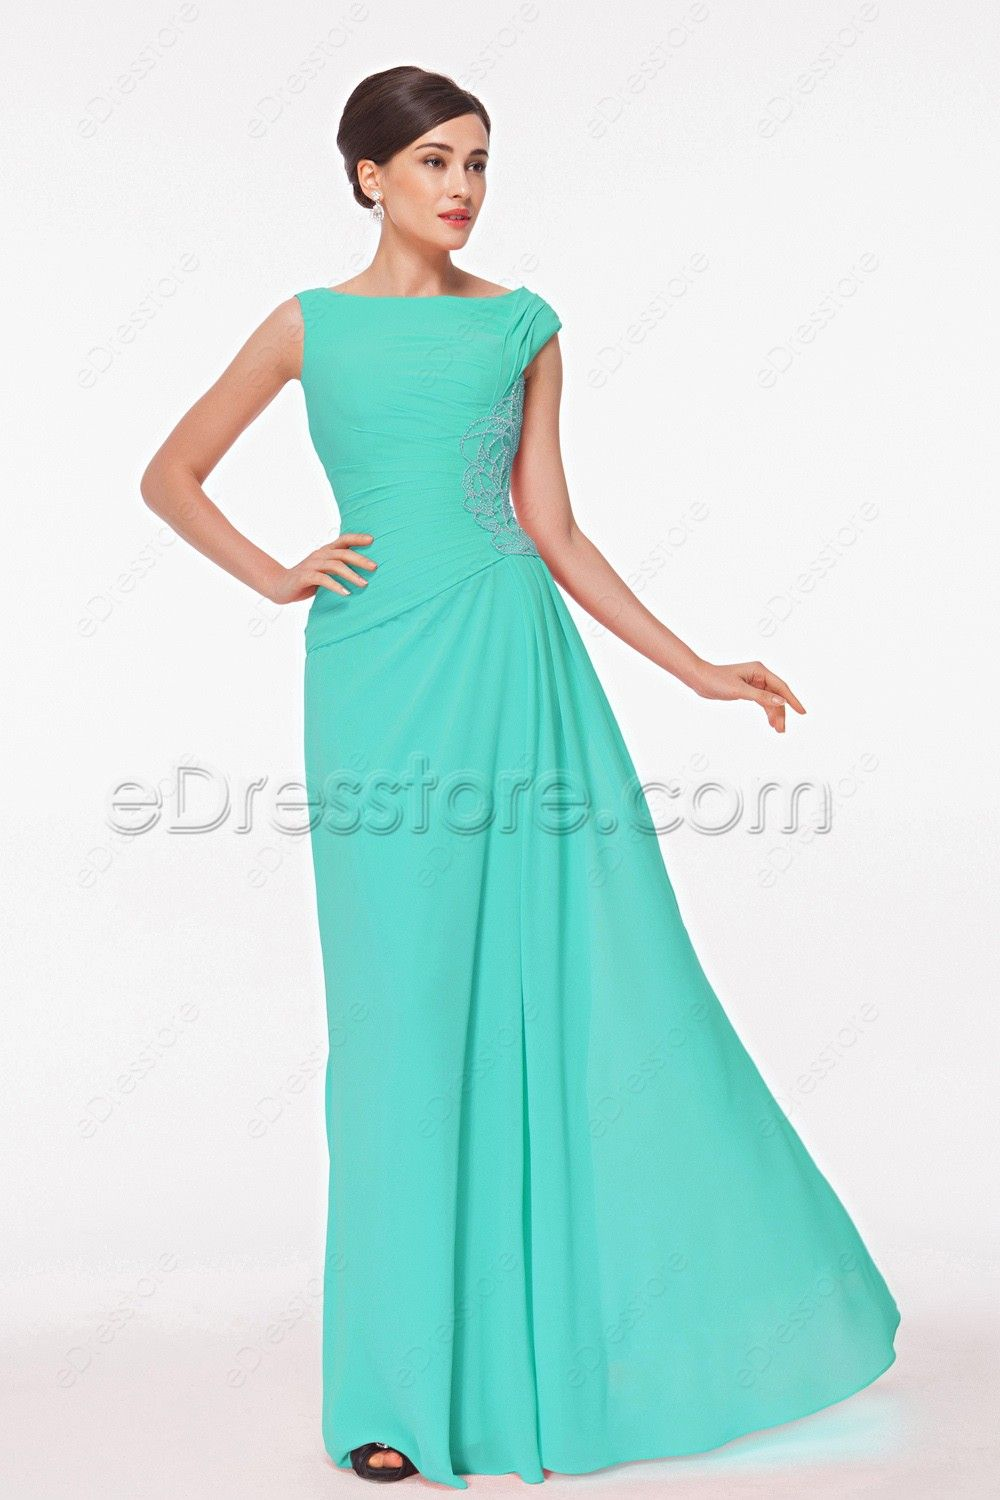 Modest Beaded Mint Green Mother of the Bride Dress | Pleated bodice ...